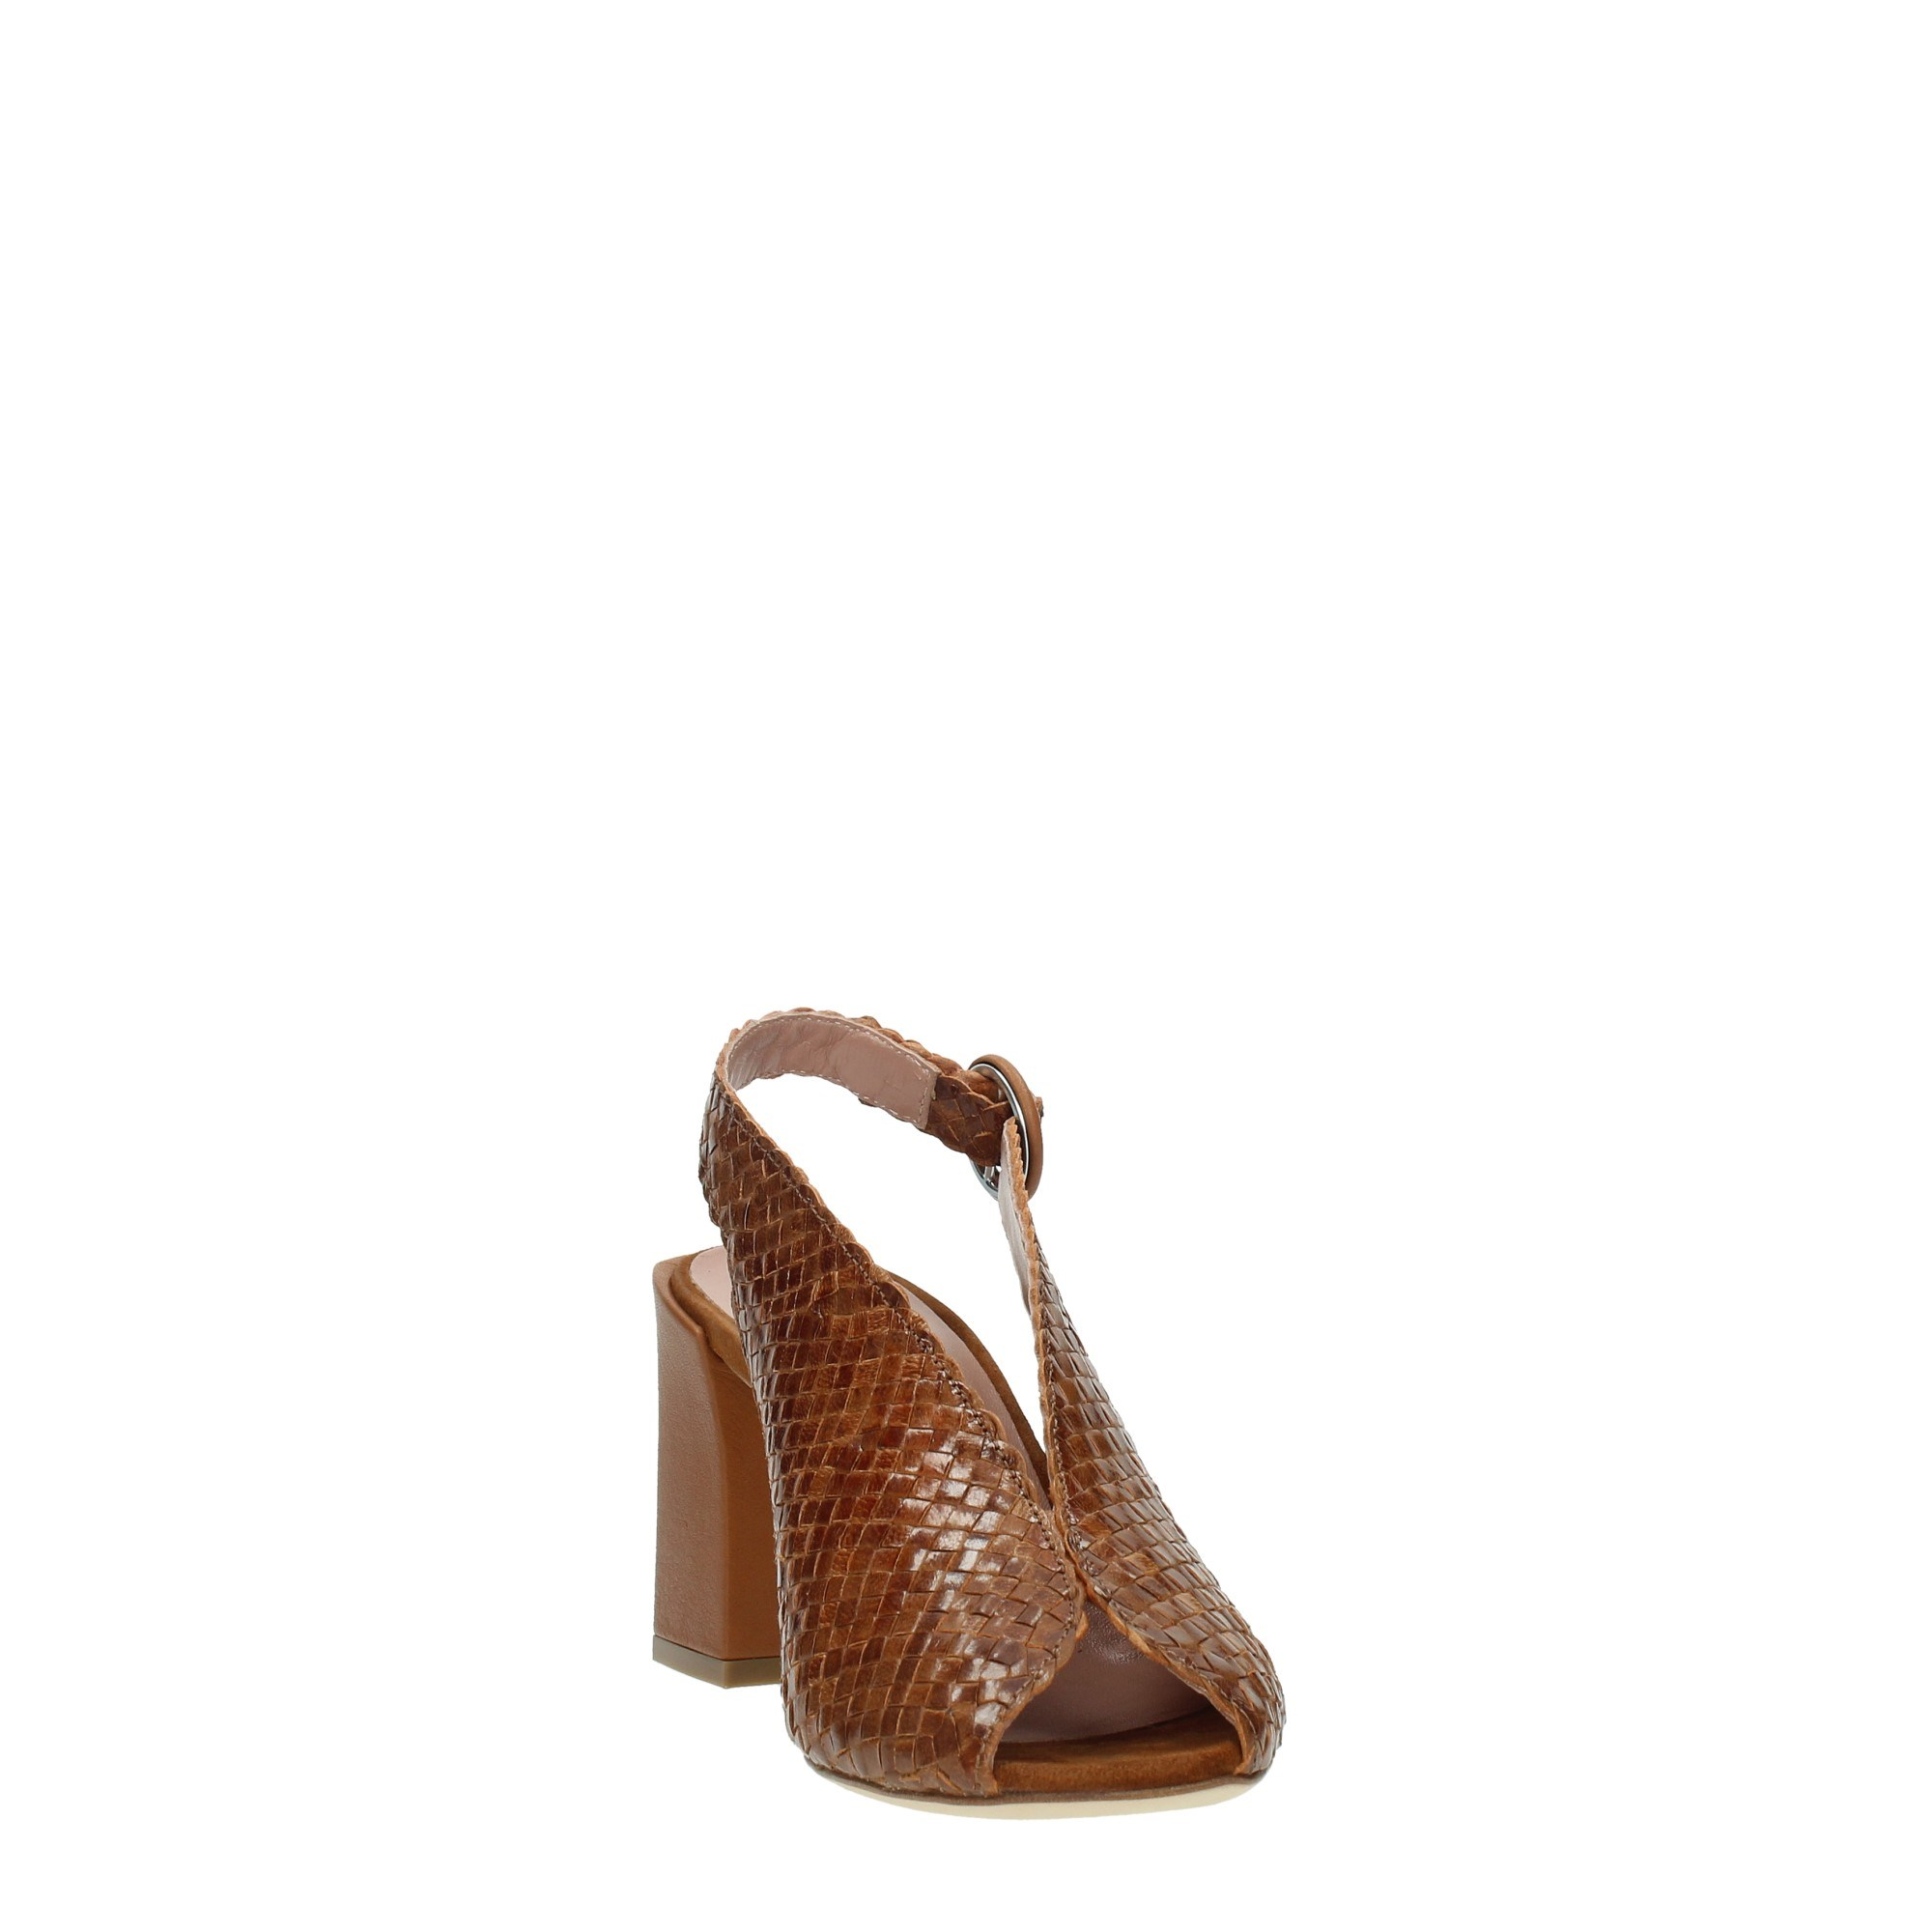 Gianmarco Sorelli Shoes Women Sandals Leather 2883